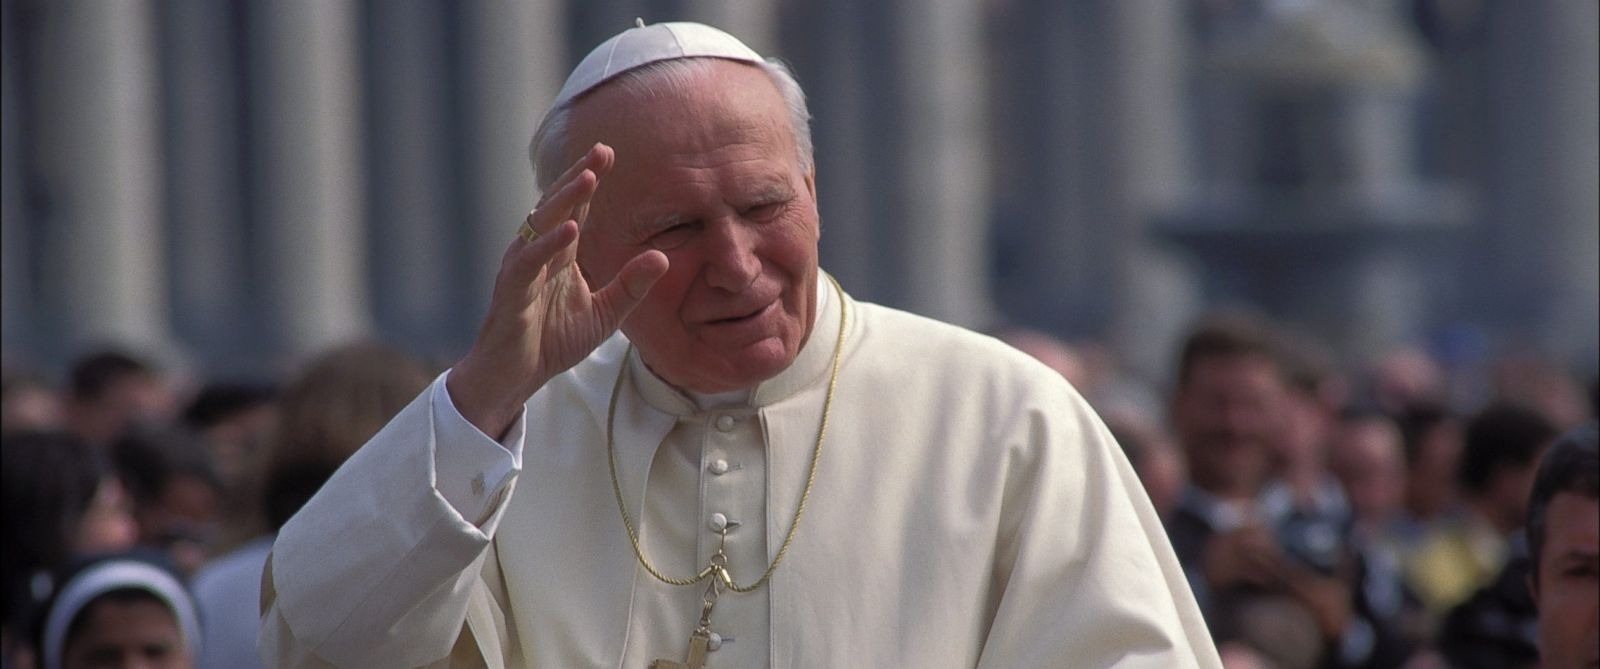 PHOTO: Jean Paul II in public audience at the gardens of San Petrus in Rome, April 5, 1995.